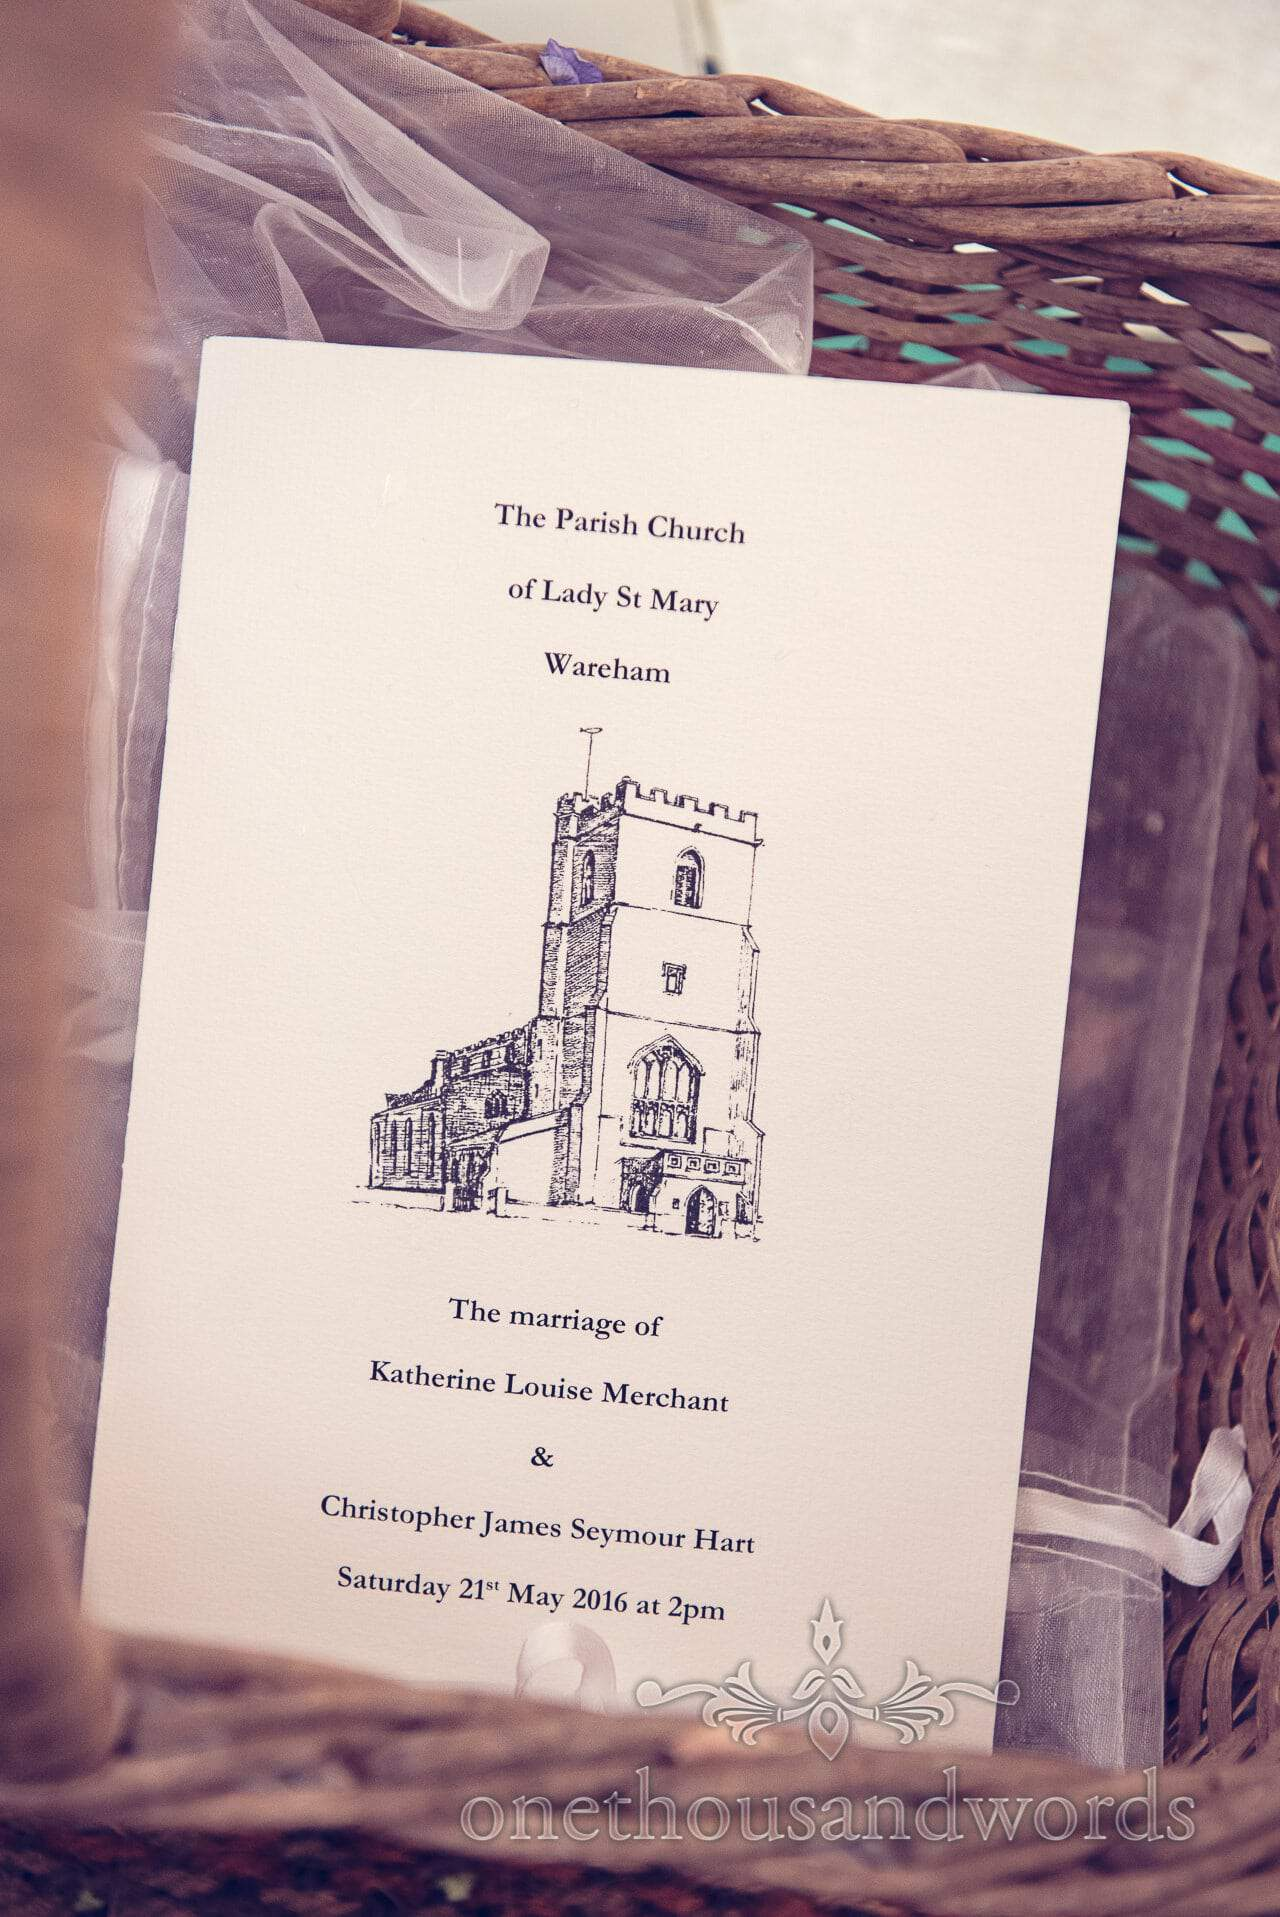 Order of service for Lady St Mary, Wareham wedding